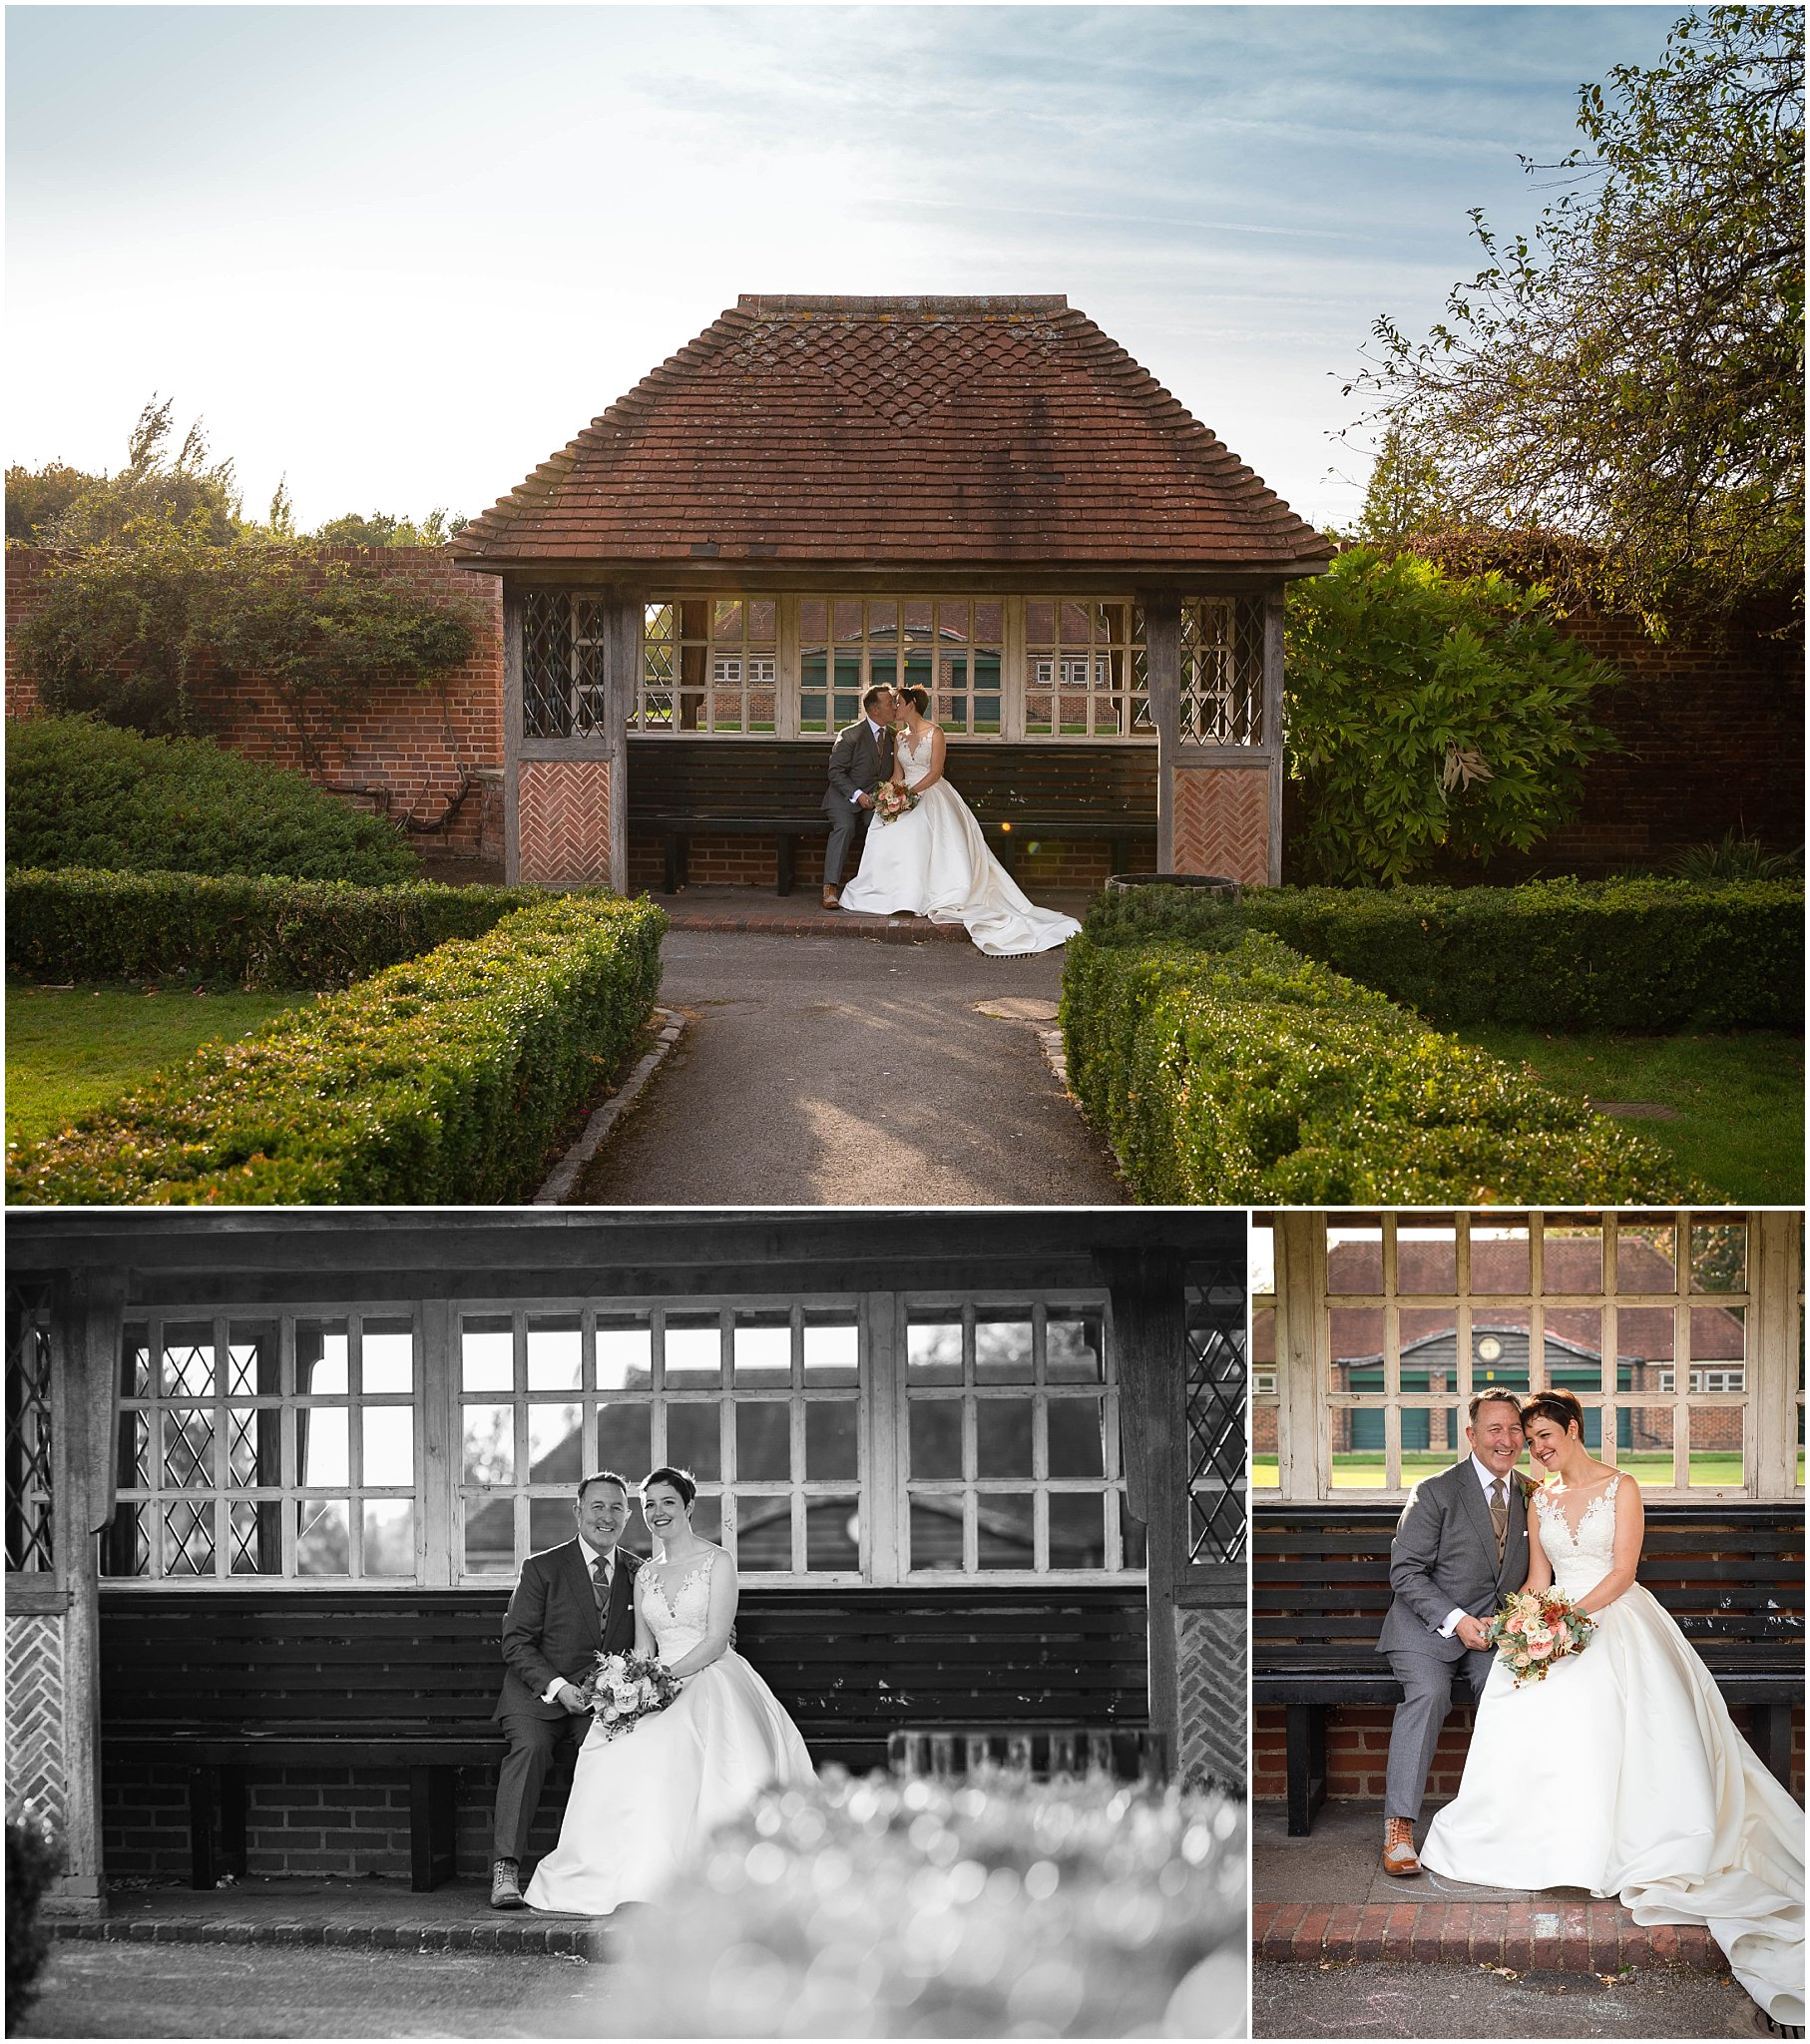 Wedding Tudor barn Eltham